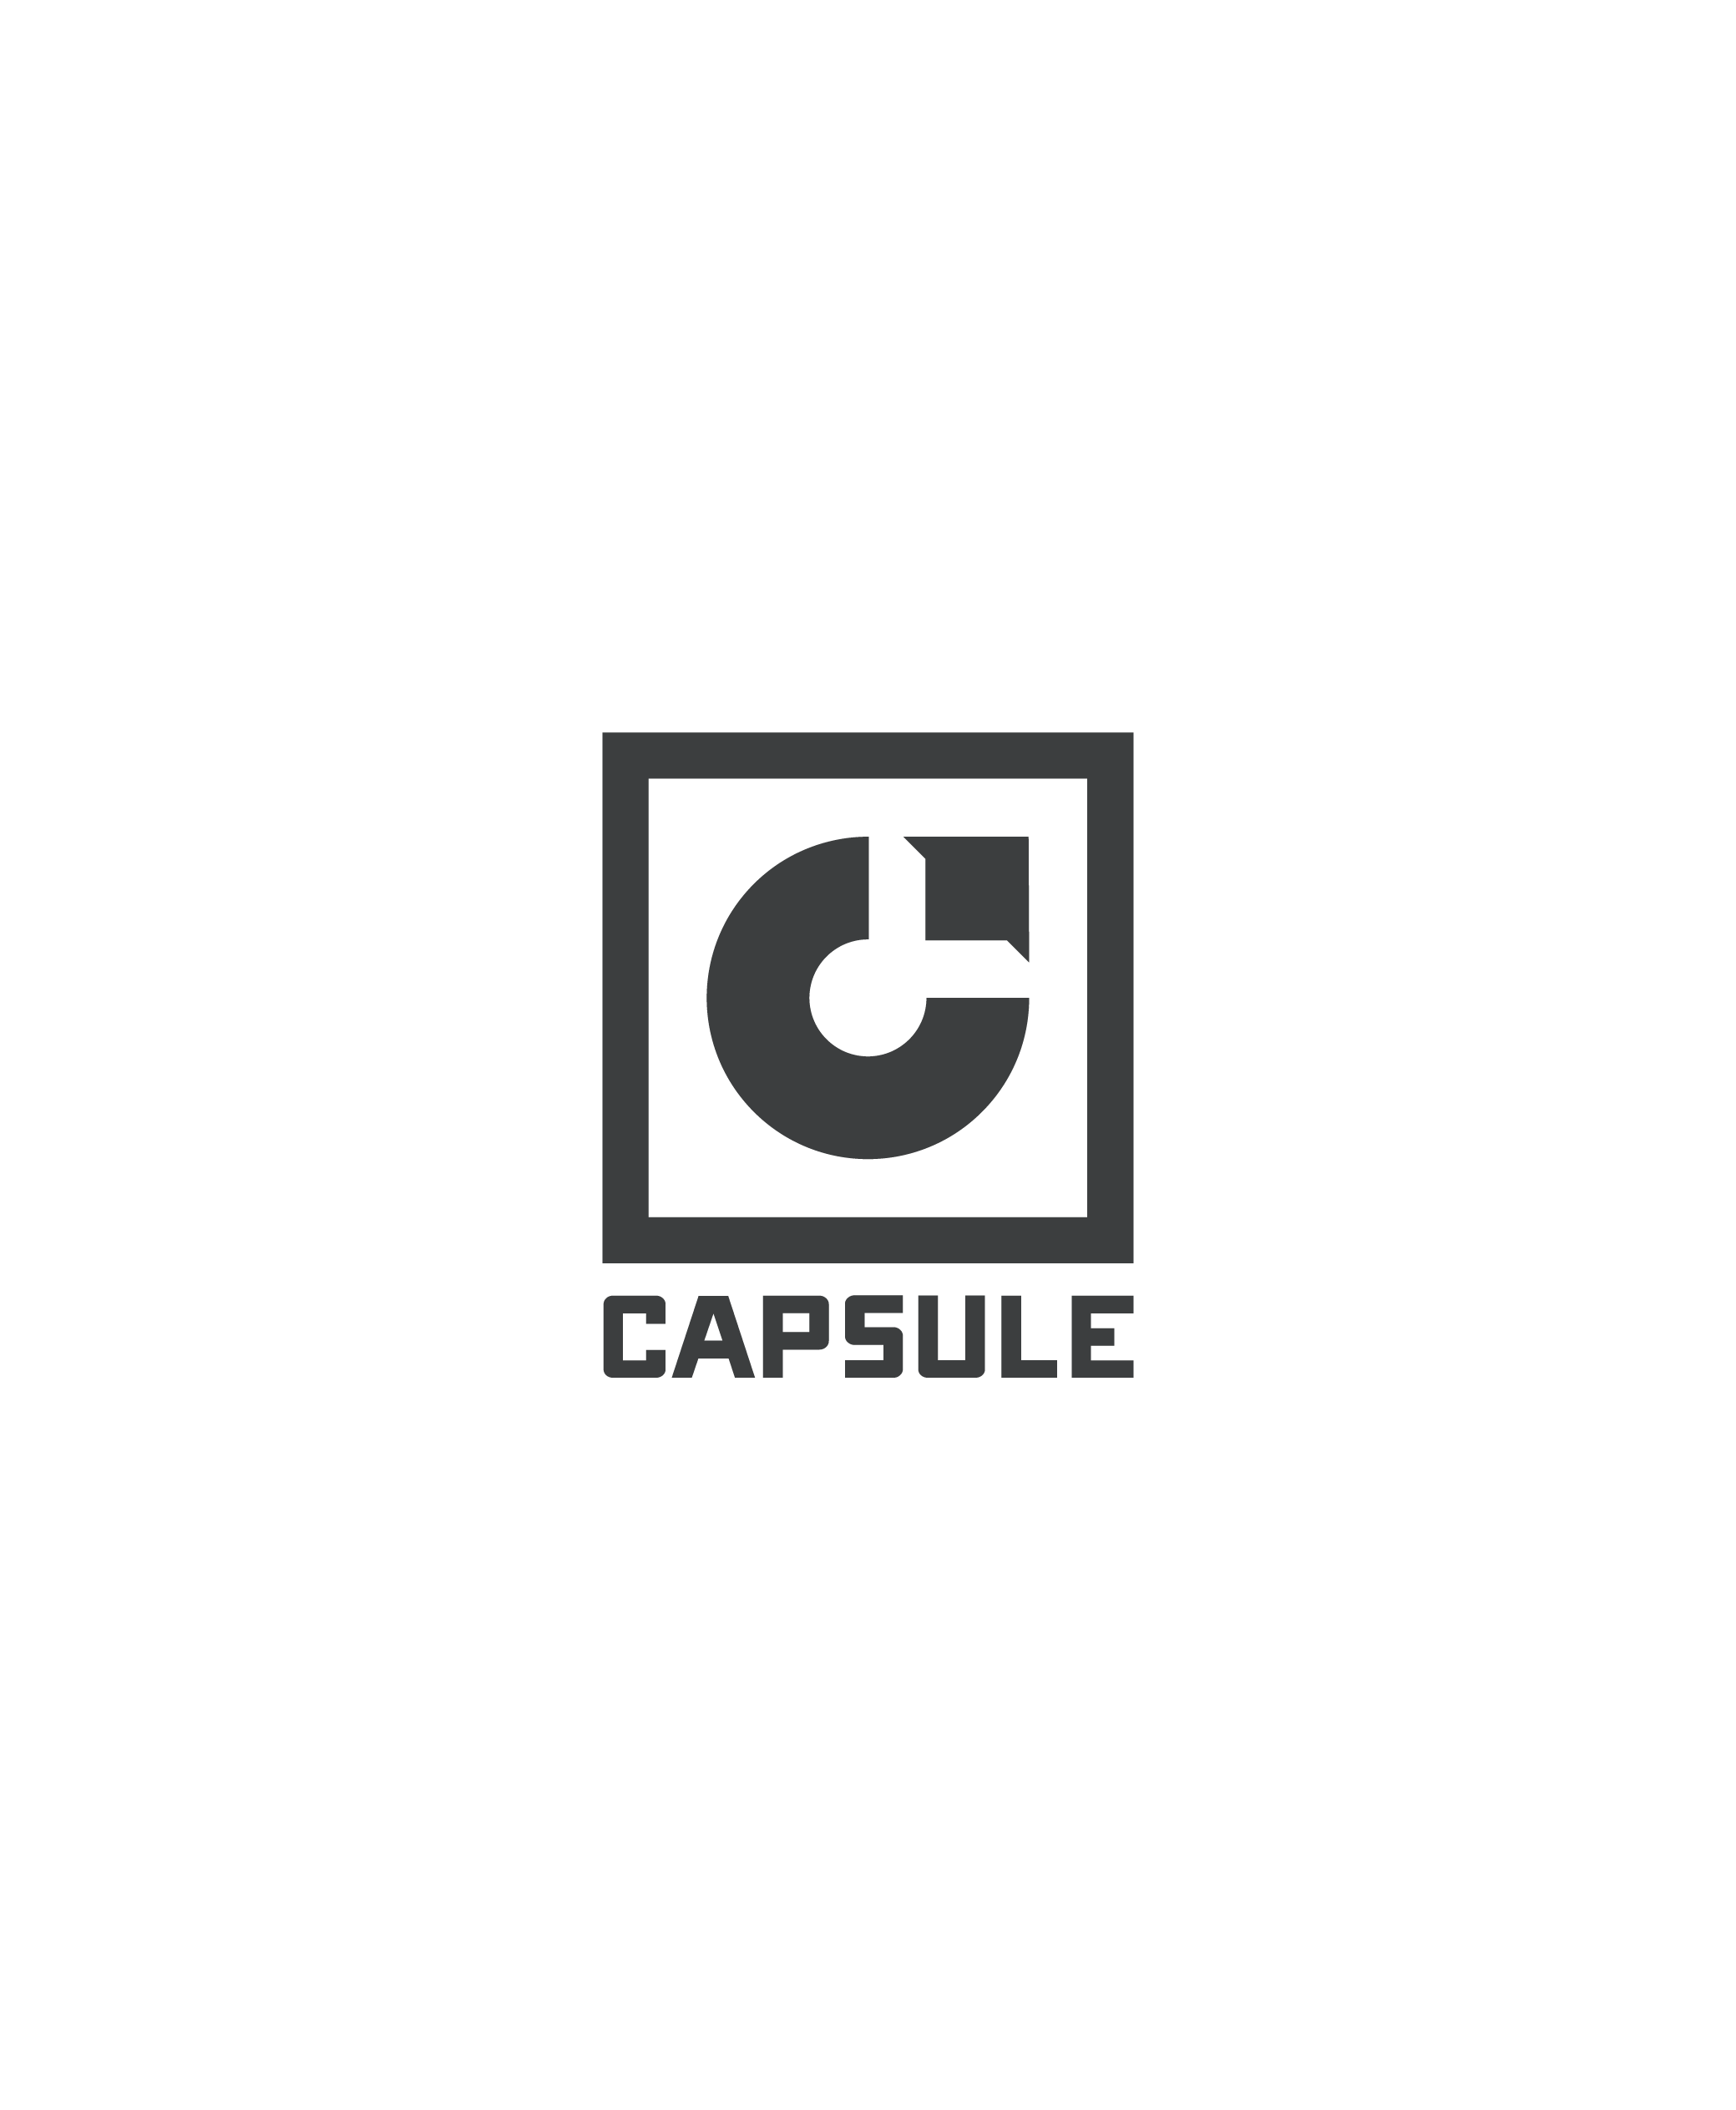 Capsule Skateboard Graphics Case Study-08.png